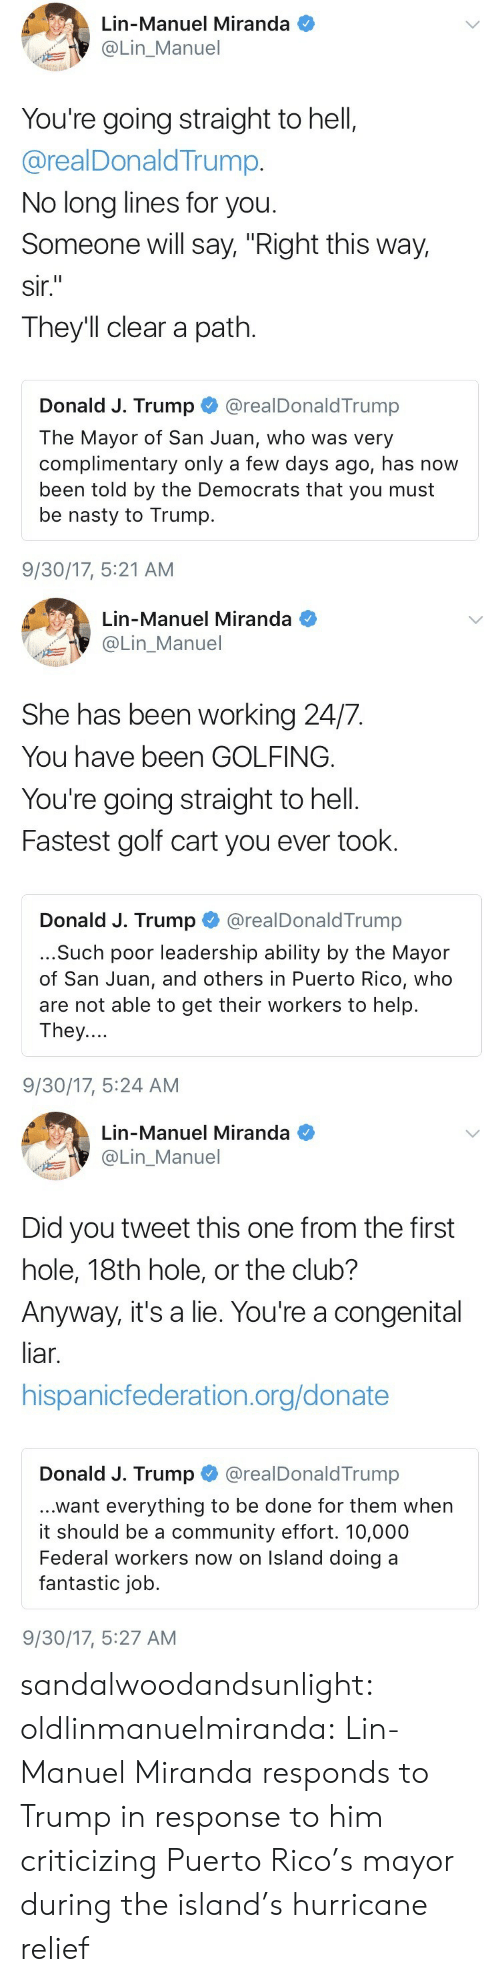 "Club, Community, and Nasty: Lin-Manuel Miranda  @Lin_Manuel  You're going straight to hell,  @realDonaldTrump.  No long lines for you  Someone will say, ""Right this way,  sir.  They'll clear a path.  Donald J. Trump @realDonaldTrump  The Mayor of San Juan, who was very  complimentary only a few days ago, has now  been told by the Democrats that you must  be nasty to Trump.  9/30/17, 5:21 AM   Lin-Manuel Miranda  OLin_Manuel  She has been working 24/7.  You have been GOLFING.  You're going straight to hell.  Fastest golf cart you ever took.  Donald J. Trump@realDonaldTrump  ...Such poor leadership ability by the Mayor  of San Juan, and others in Puerto Rico, who  are not able to get their workers to help.  They....  9/30/17, 5:24 AM   Lin-Manuel Miranda  Lin_Manuel  Did you tweet this one from the first  hole, 18th hole, or the club?  Anyway, it's a lie. You're a congenital  liar.  hispanicfederation.org/donate  Donald J. Trump @realDonaldTrump  ...want everything to be done for them when  it should be a community effort. 10,000  Federal workers now on Island doing a  fantastic job.  9/30/17, 5:27 AM sandalwoodandsunlight:  oldlinmanuelmiranda: Lin-Manuel Miranda responds to Trump in response to him criticizing Puerto Rico's mayor during the island's hurricane relief"